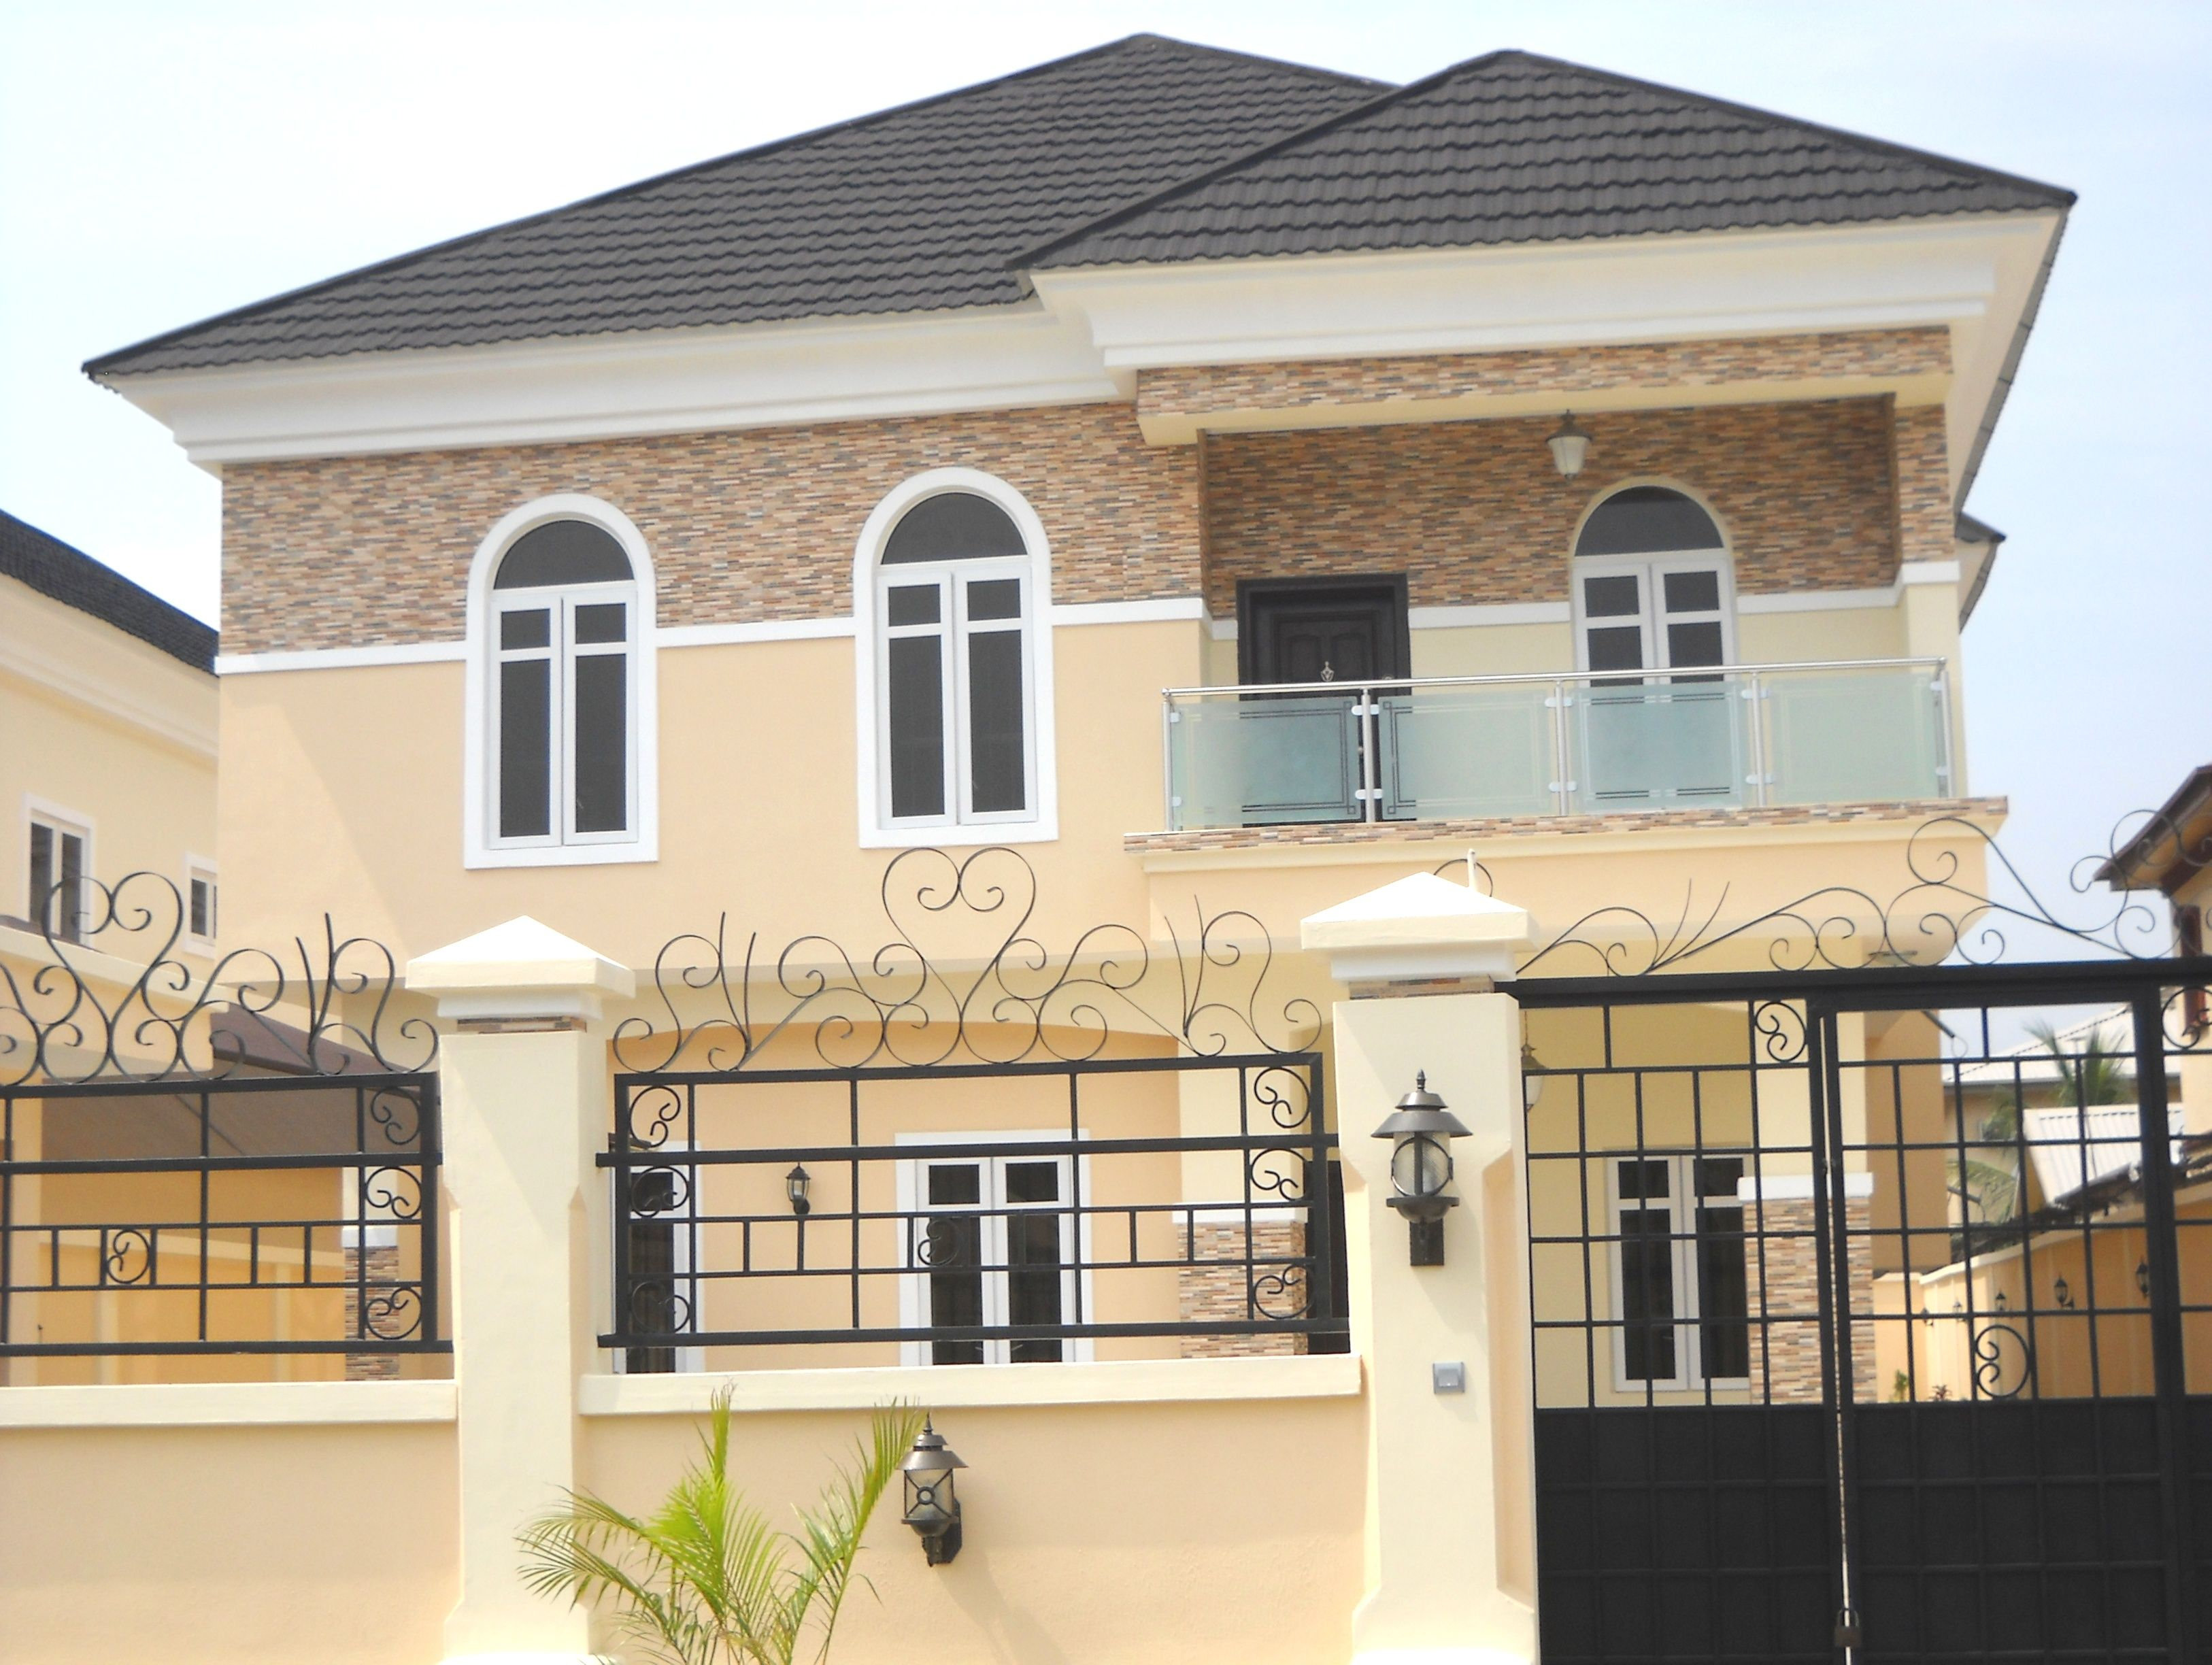 Own beautiful houses in nigeria village lagos island lekki abuja